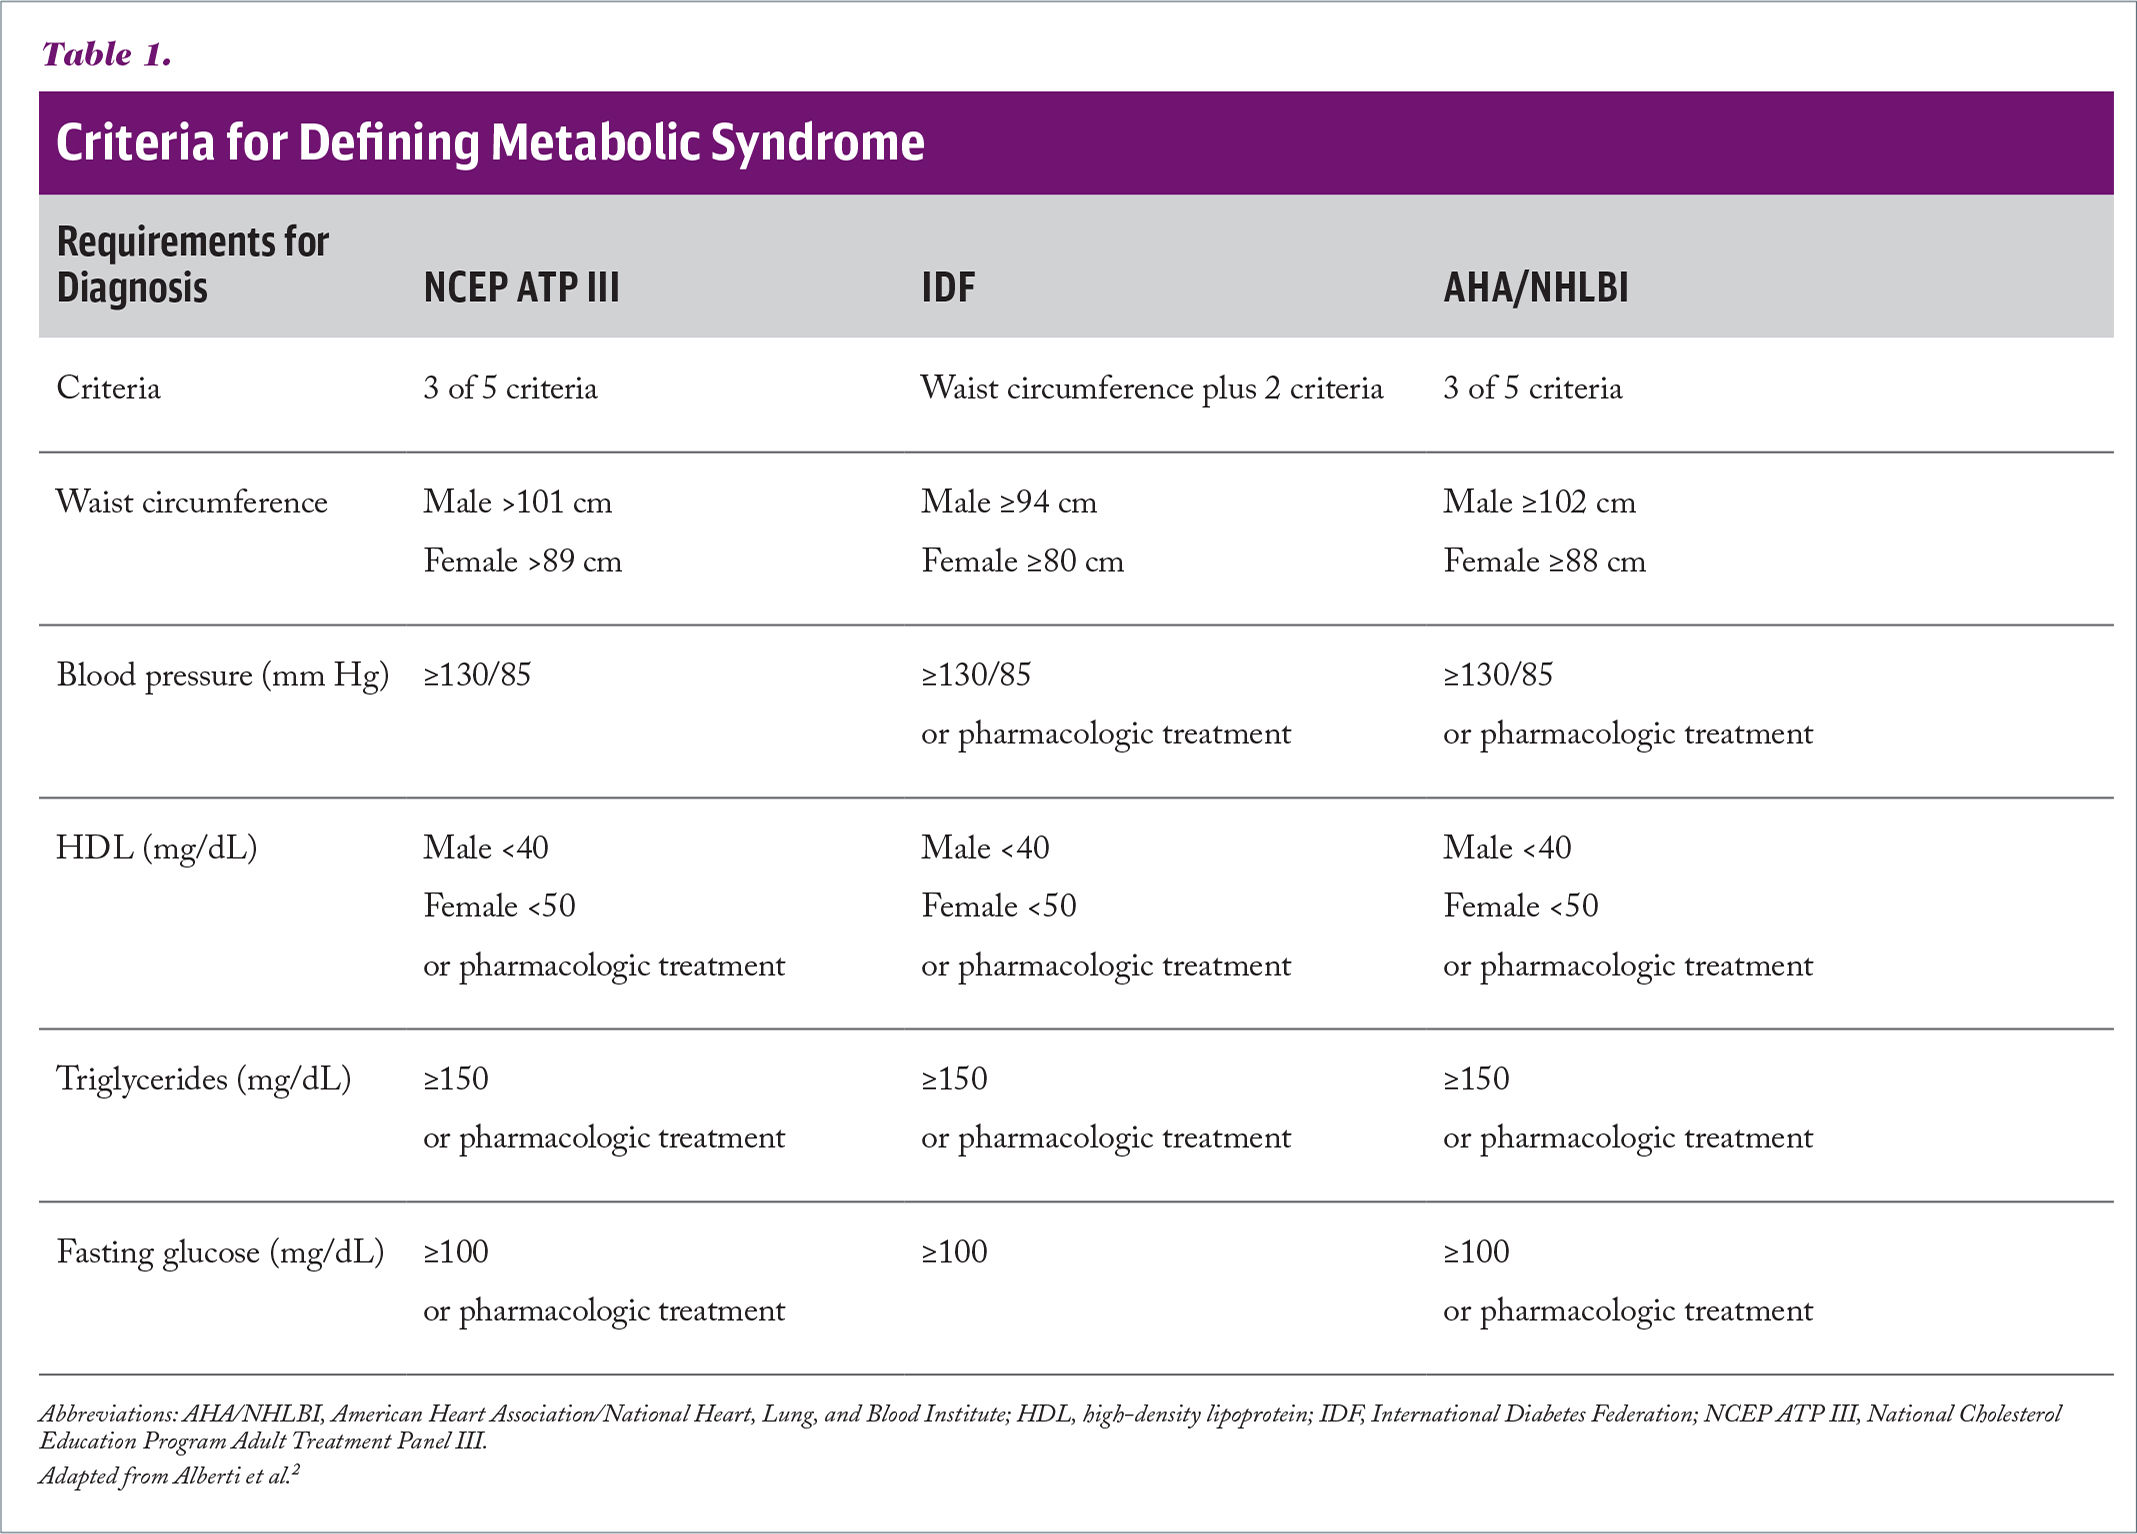 Criteria for Defining Metabolic Syndrome